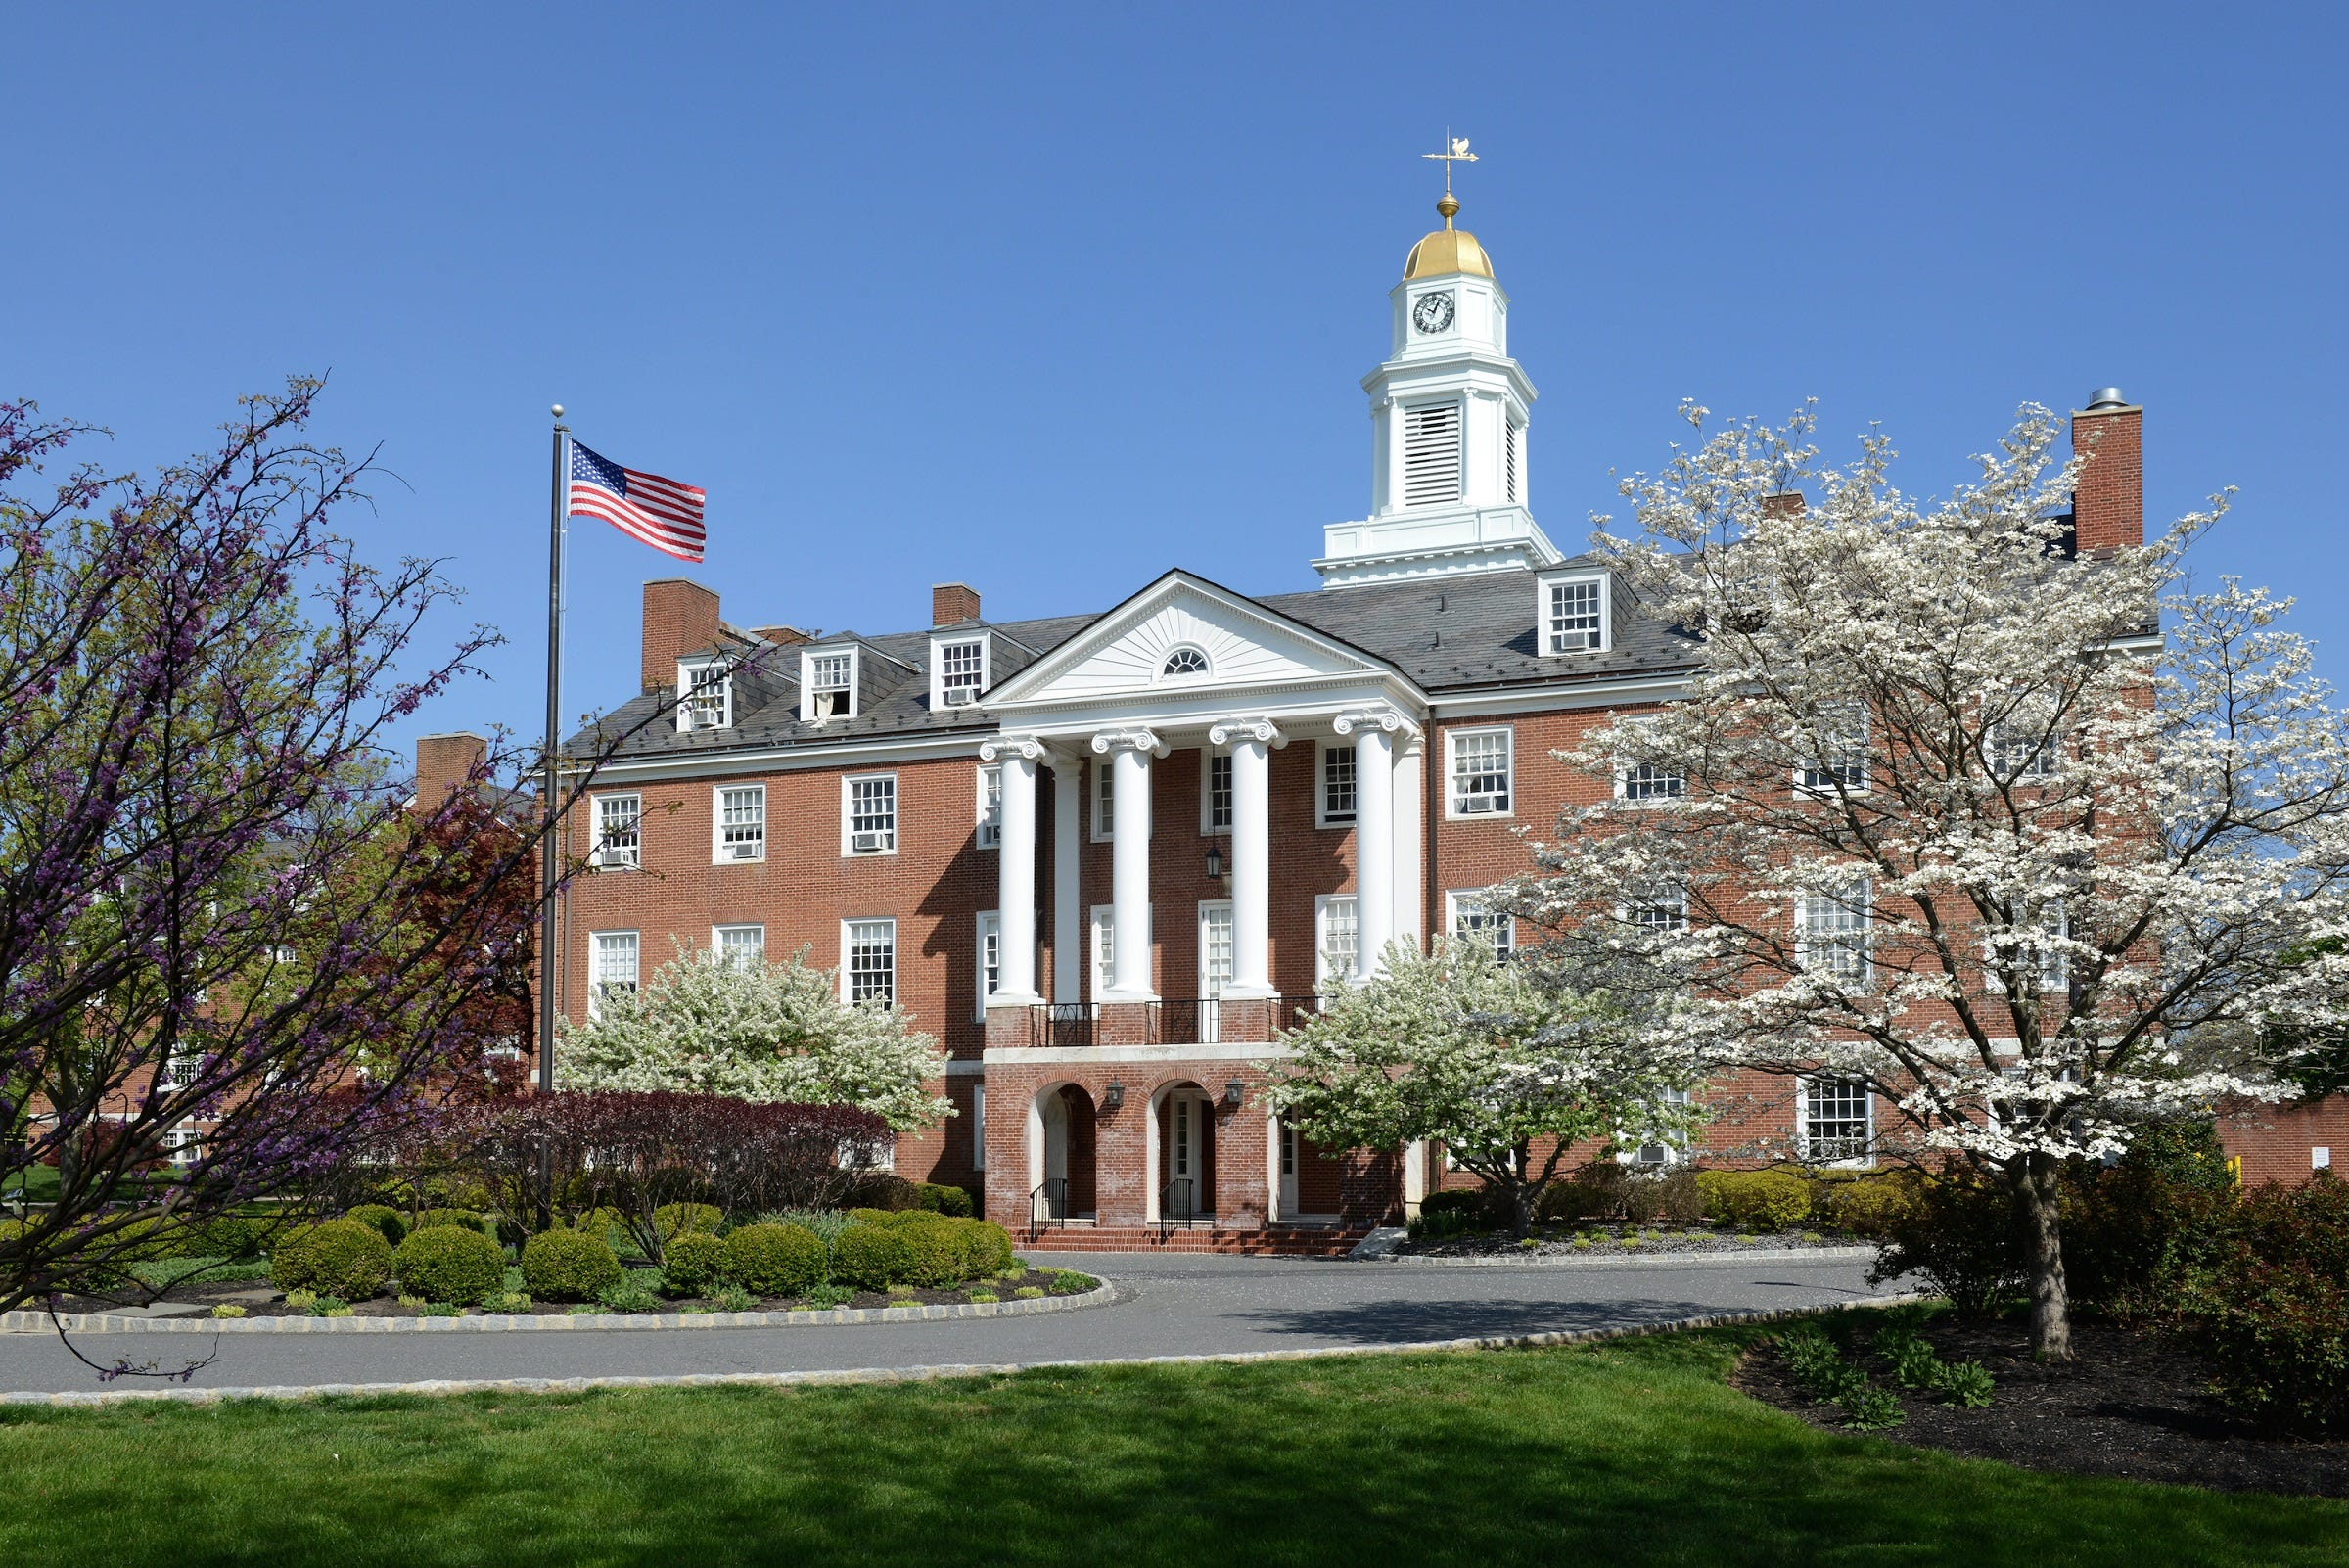 Rider University recently closed on new bonded dent in part to to help fund the cost of transitioning Westminster Choir College - its Williamson Hall is pictured here - to Rider's Lawrenceville campus.